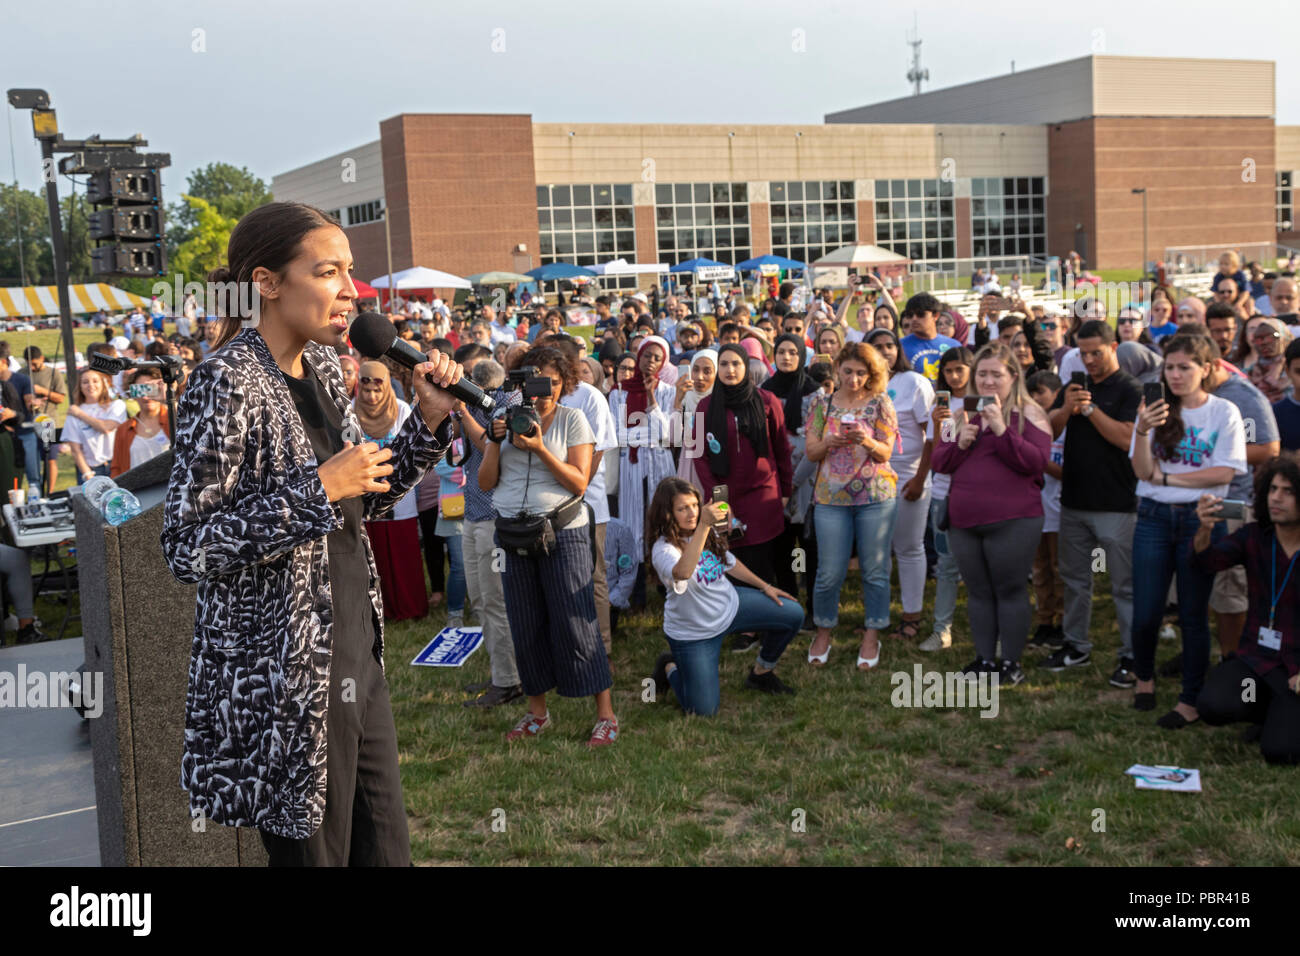 Dearborn, Michigan USA - 29 July 2018 - Alexandria Ocasio-Cortez speaks at a Muslim Get Out the Vote rally, sponsored by several Muslim community organizations. Ocasio-Cortez is the Democratic candidate for Congress in New York's 14th District, having upset incumbent Joe Crowley. Credit: Jim West/Alamy Live News - Stock Image